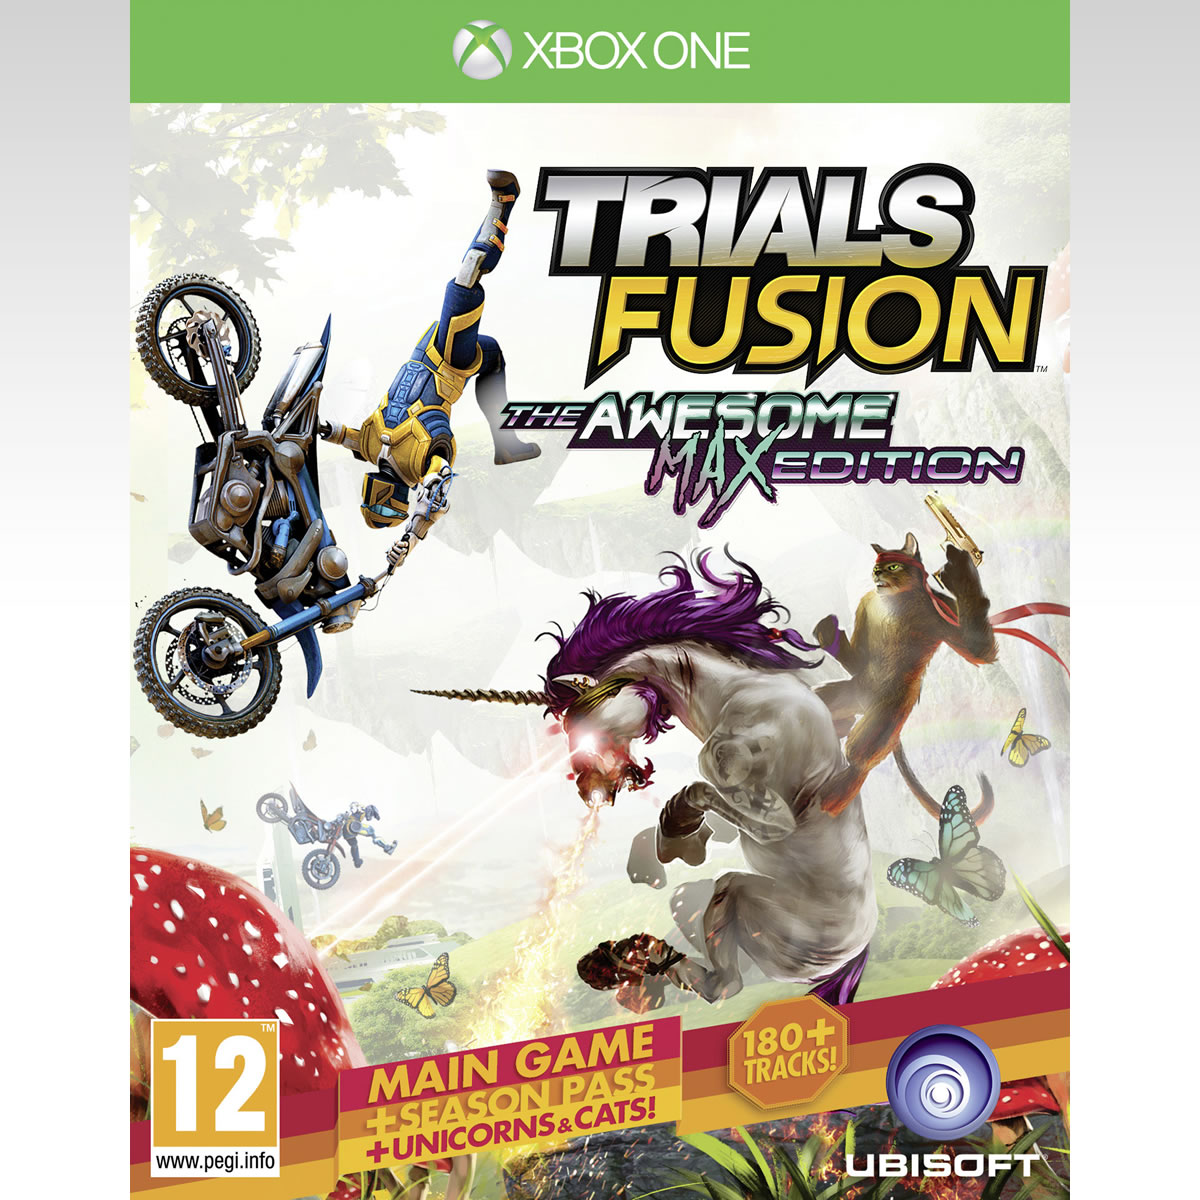 TRIALS FUSION: THE AWESOME MAX EDITION (XBOX ONE)